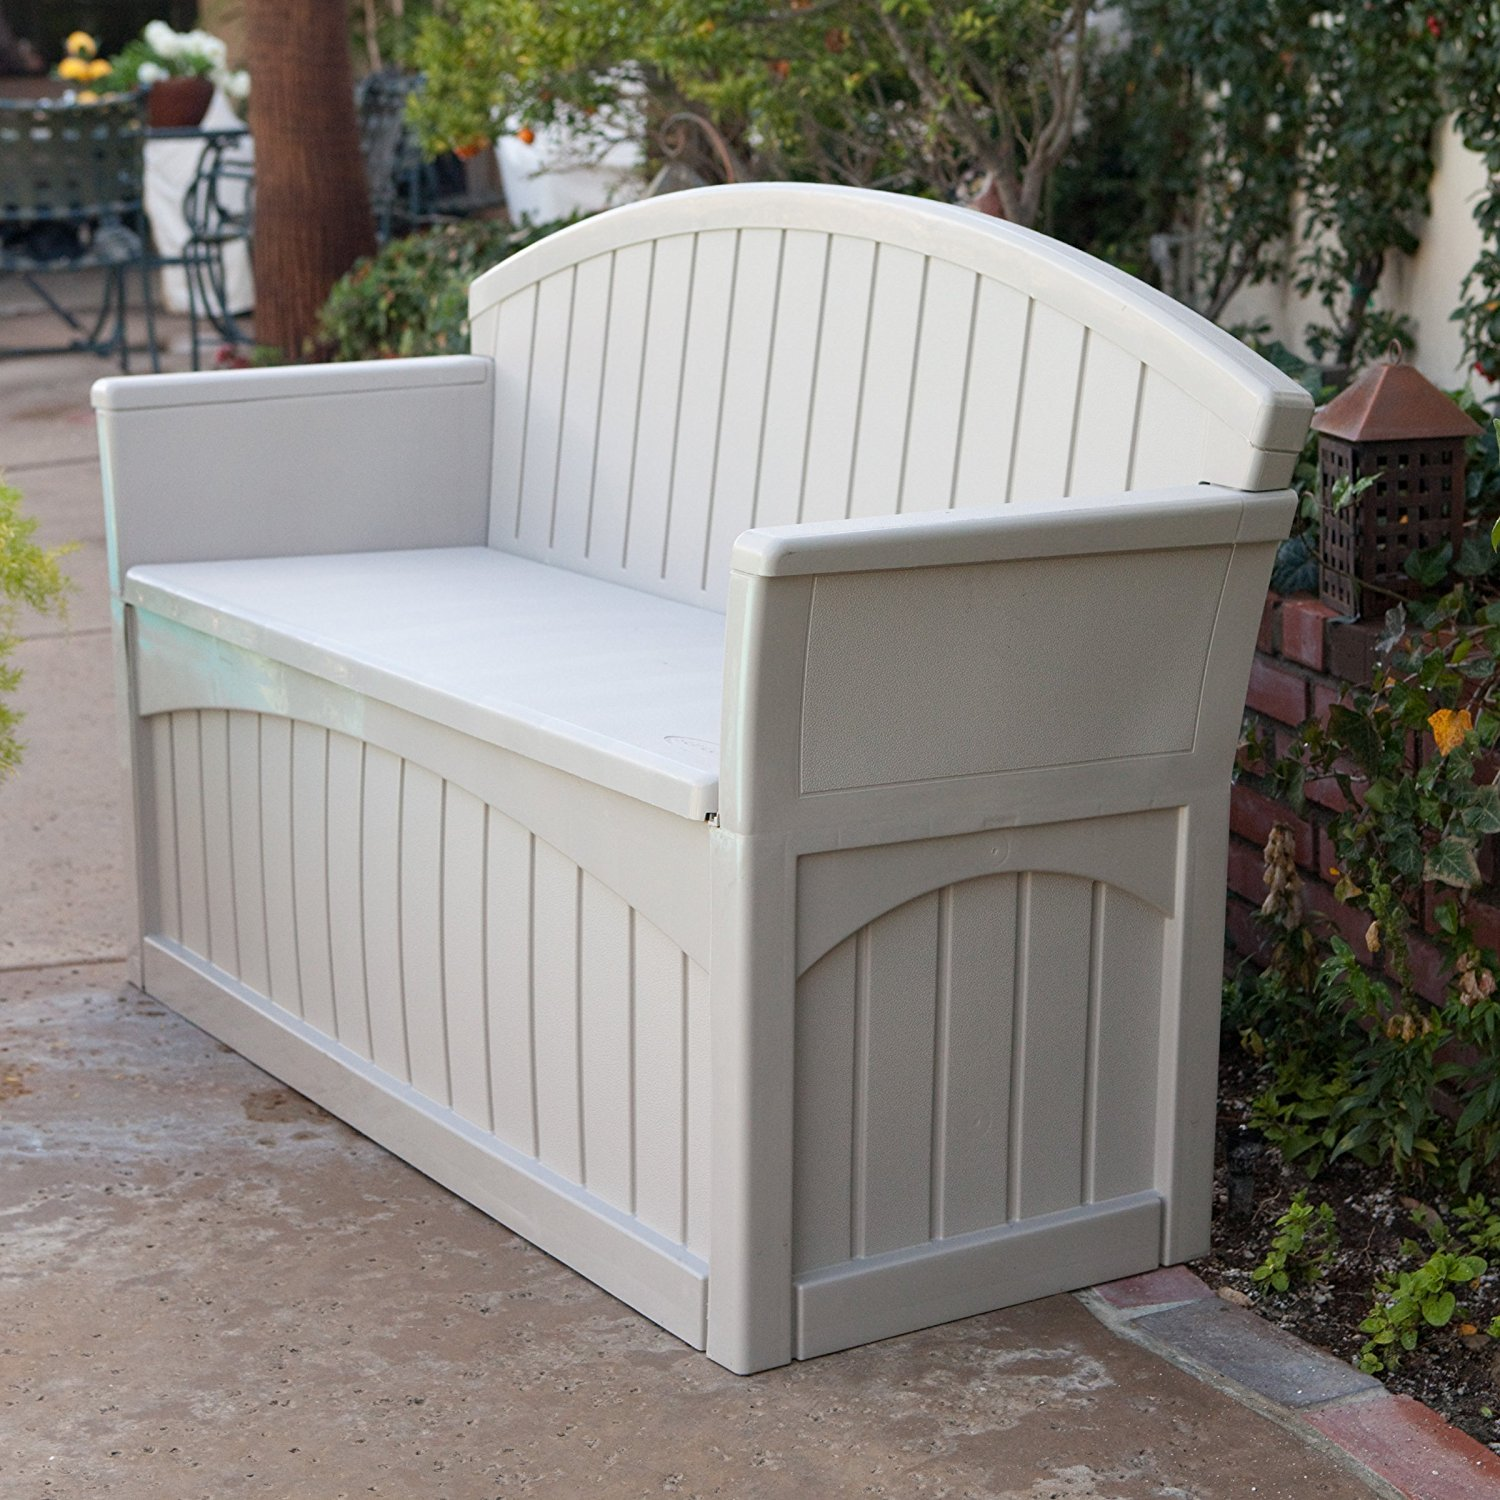 Astounding Cheap Boat Bench Seat Find Boat Bench Seat Deals On Line At Beatyapartments Chair Design Images Beatyapartmentscom